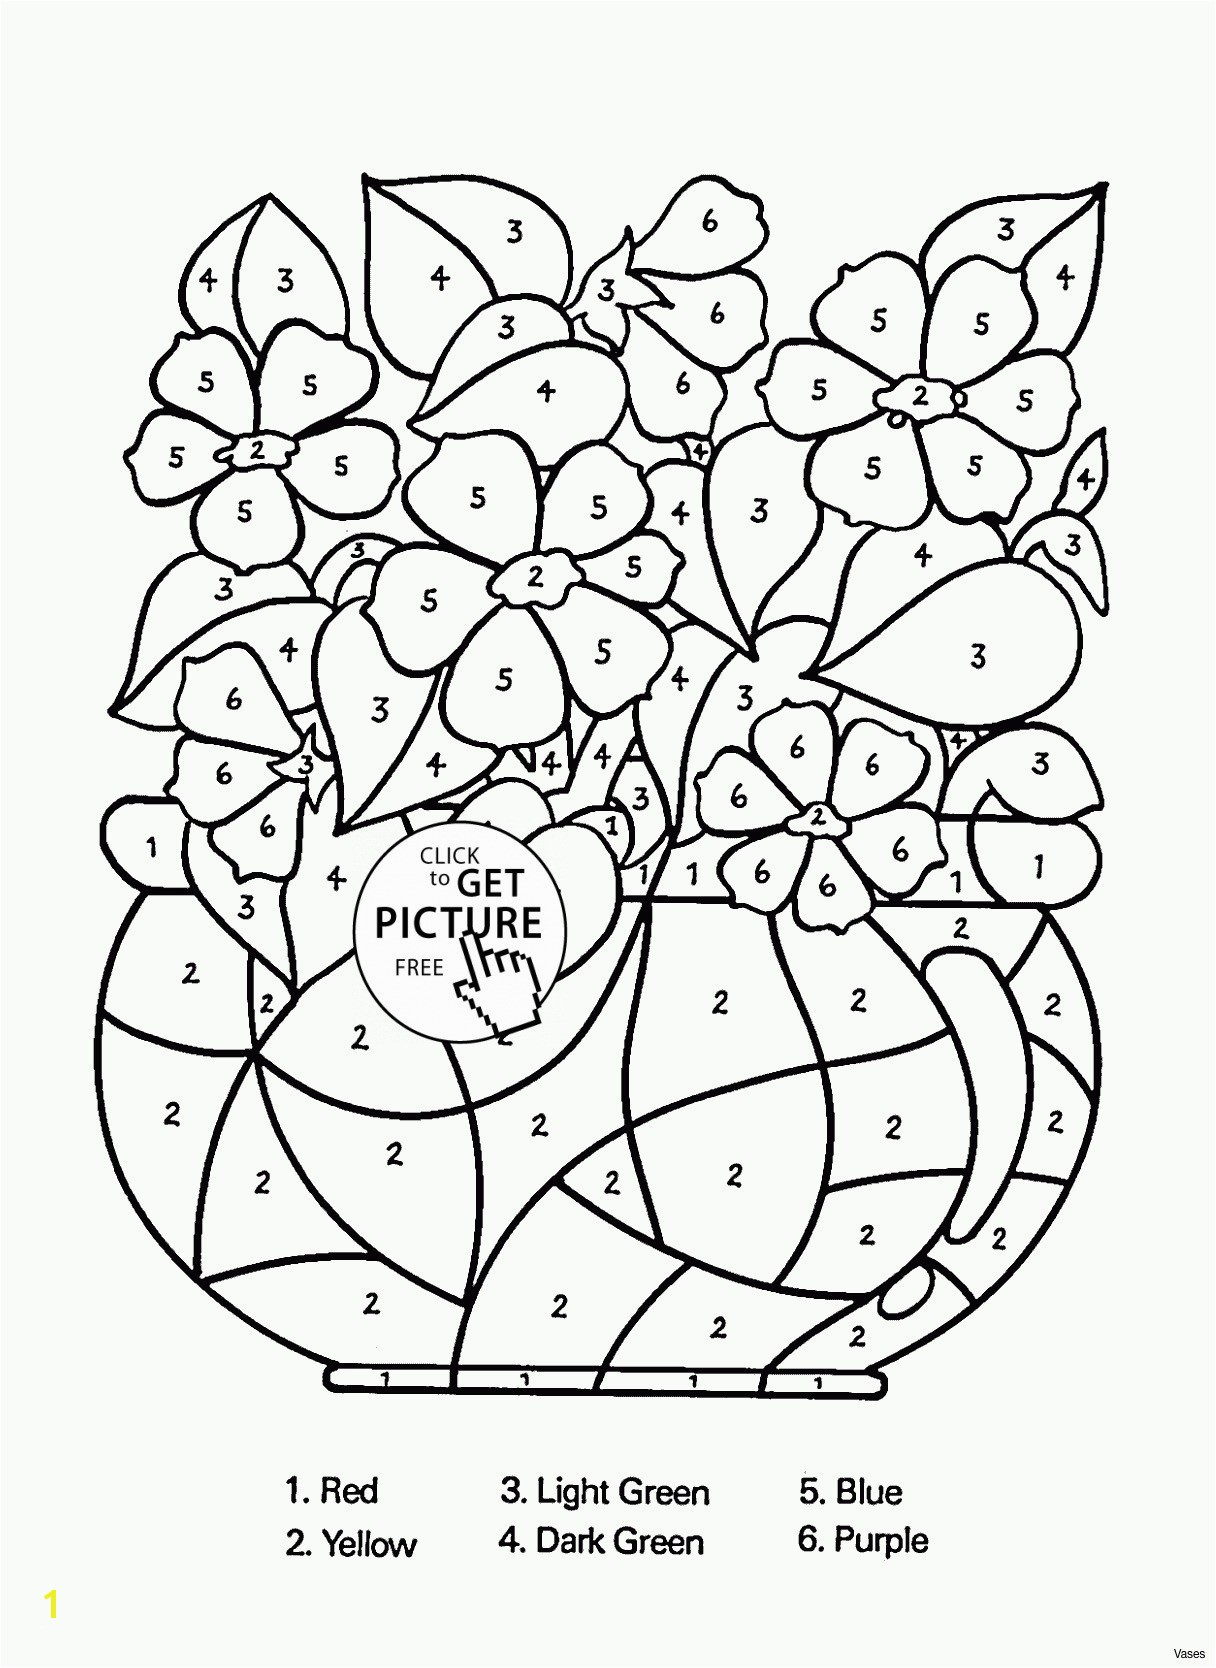 Utv Coloring Pages Utv Coloring Pages Squirrel Coloring Page Squirrel Coloring Page New